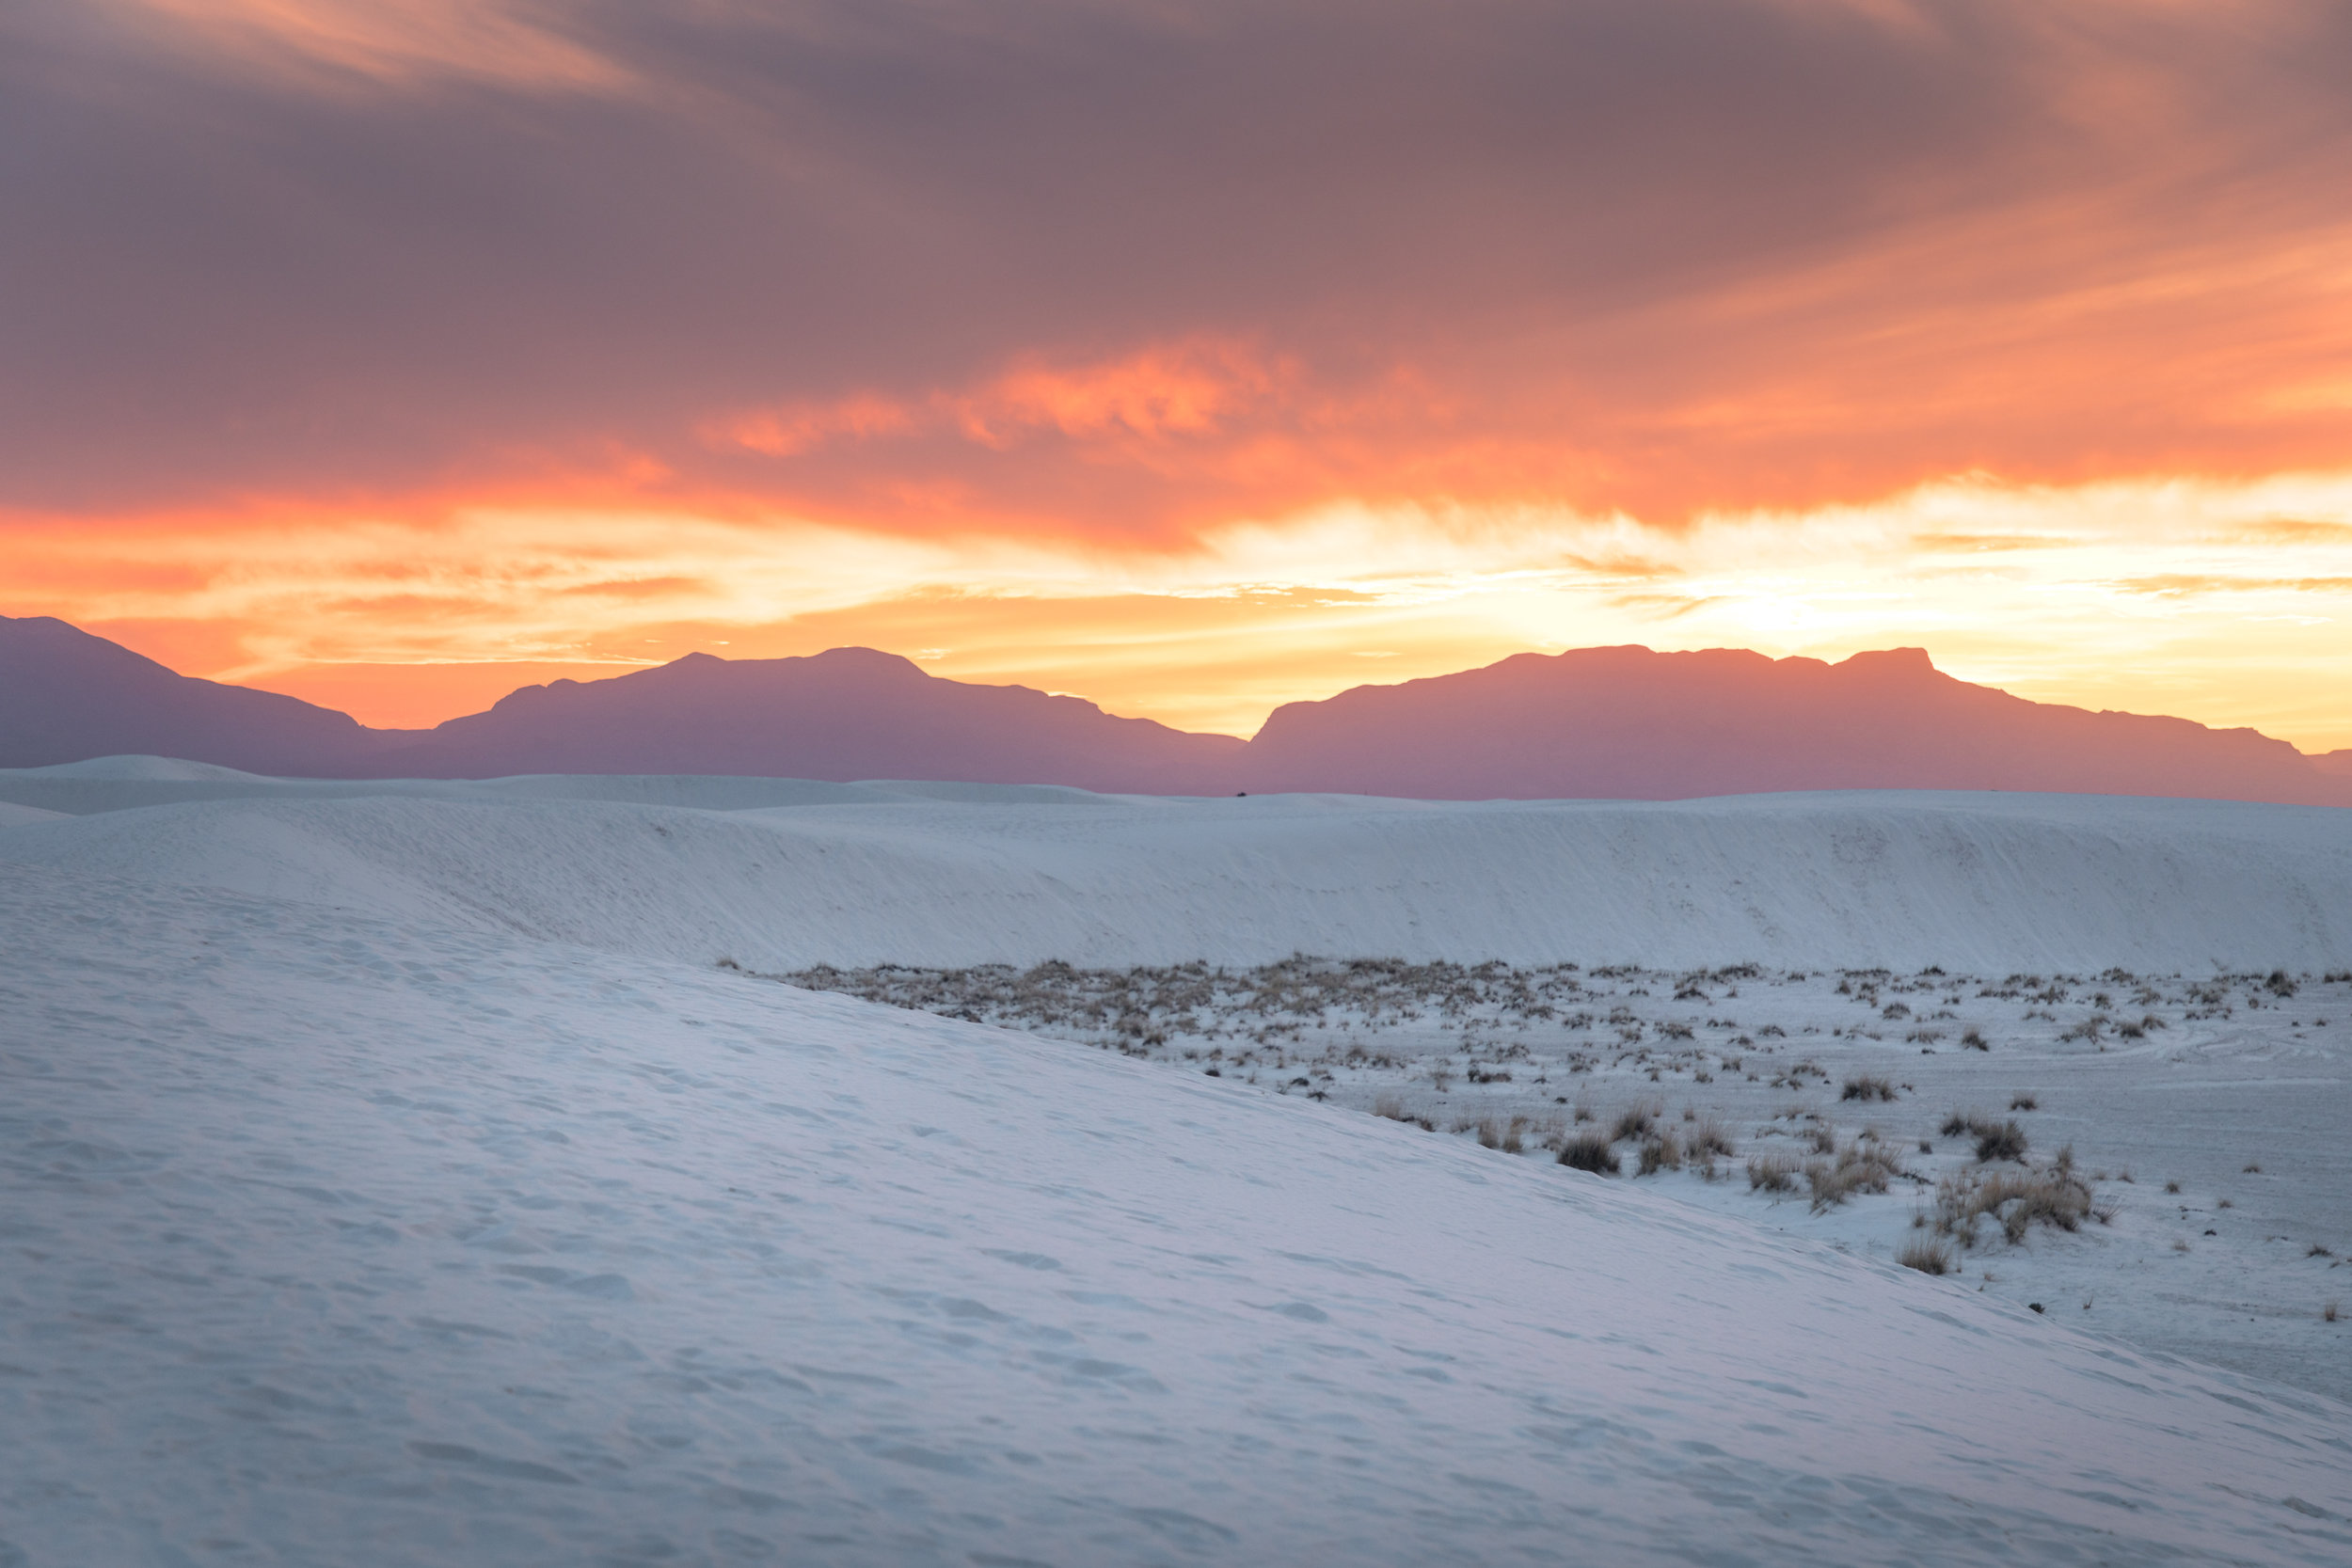 A spectacular sunset at White Sands National Monument. This picture doesn't do it justice!